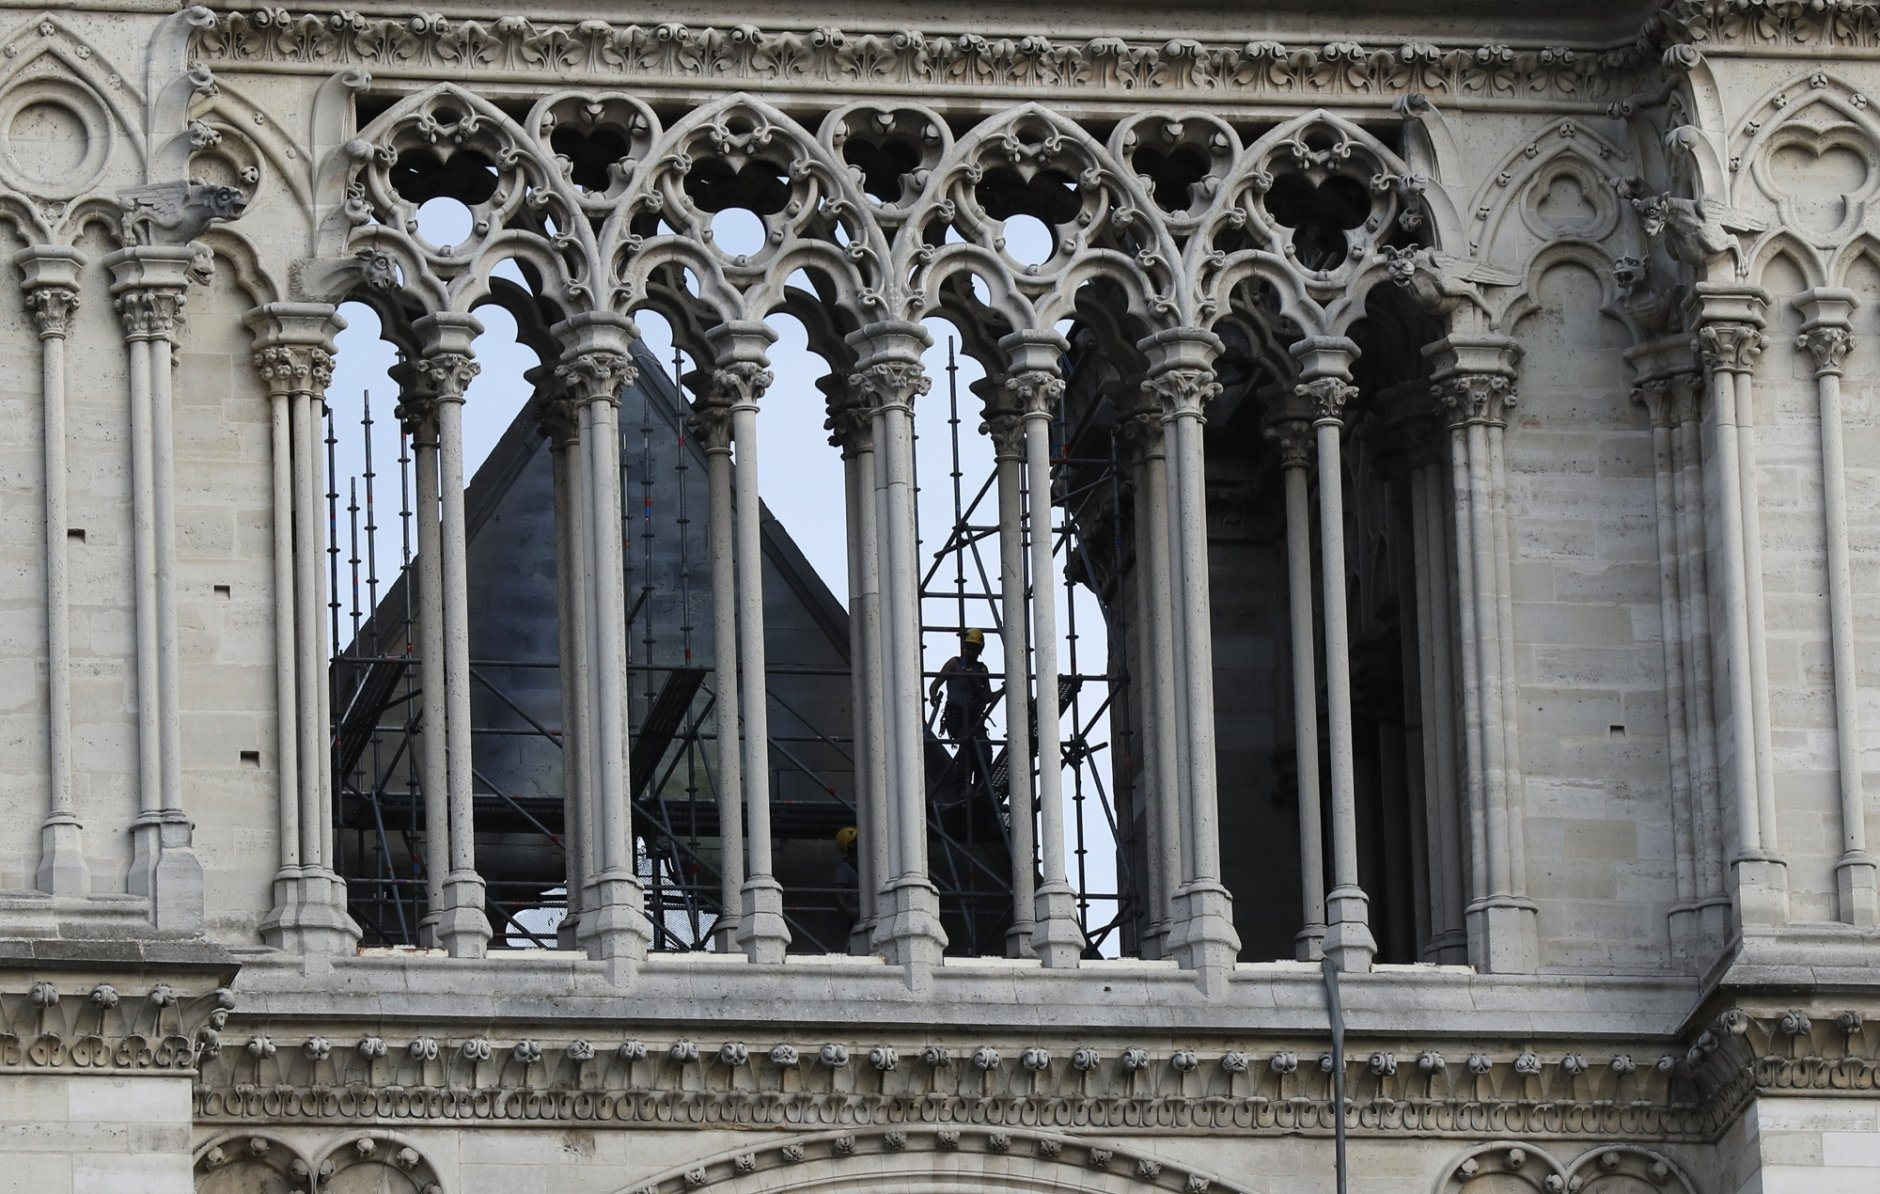 A man works at Notre Dame cathedral Thursday, April 18, 2019 in Paris. France paid a daylong tribute Thursday to the Paris firefighters who saved Notre Dame Cathedral from collapse, while construction workers rushed to secure an area above one of the church's famed rose-shaped windows and other vulnerable sections of the fire-damaged landmark. (AP Photo/Michel Euler, Pool)